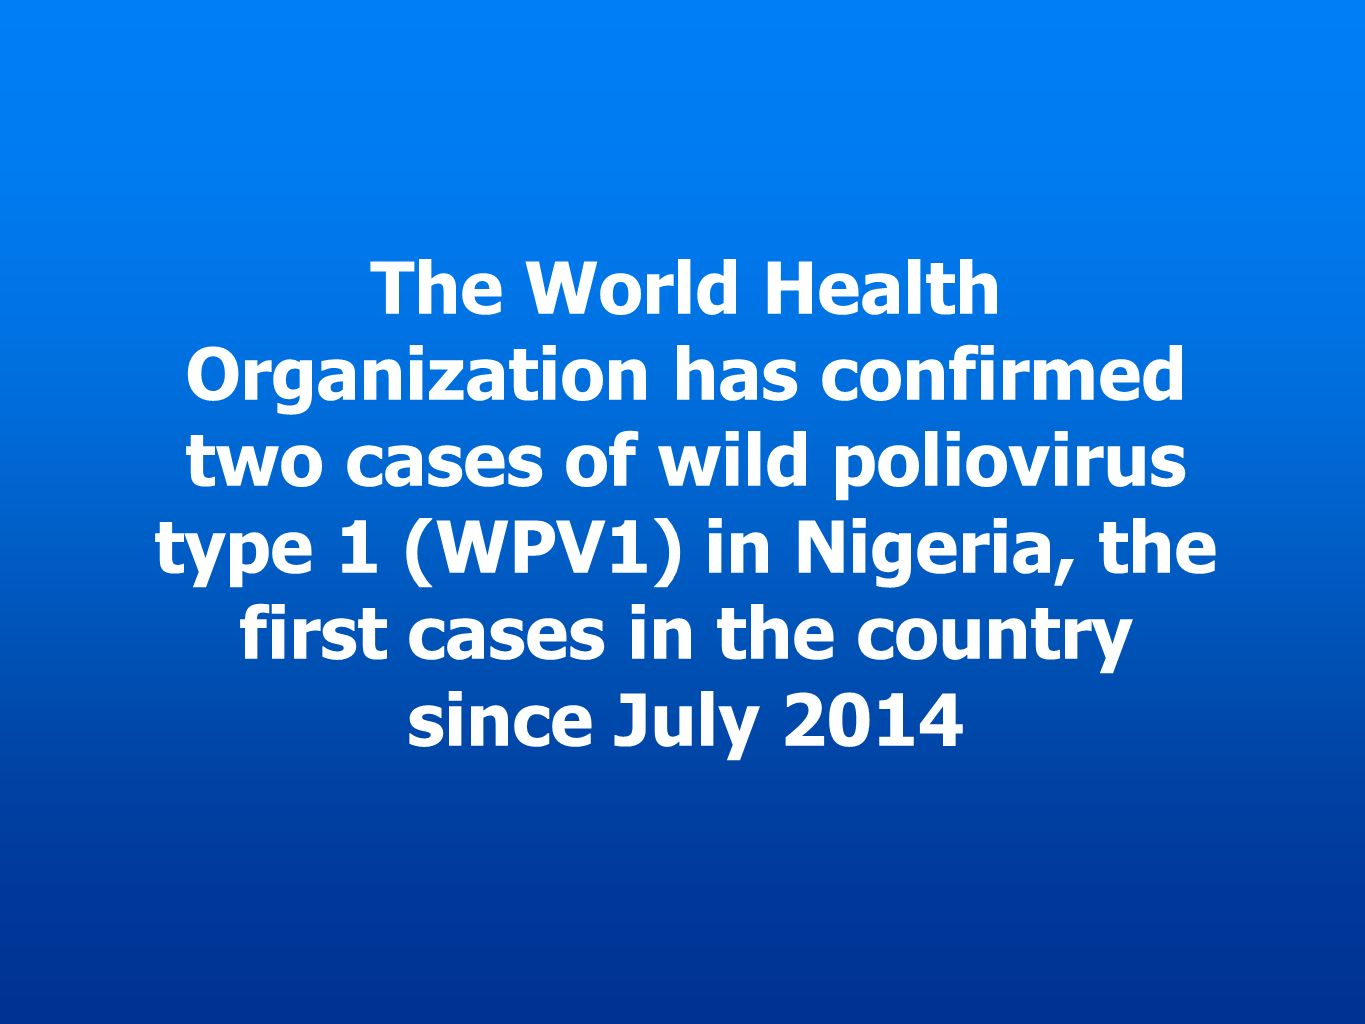 The World Health Organization has confirmed two cases of wild poliovirus type 1 (WPV1) in Nigeria, the first cases in the country since July 2014